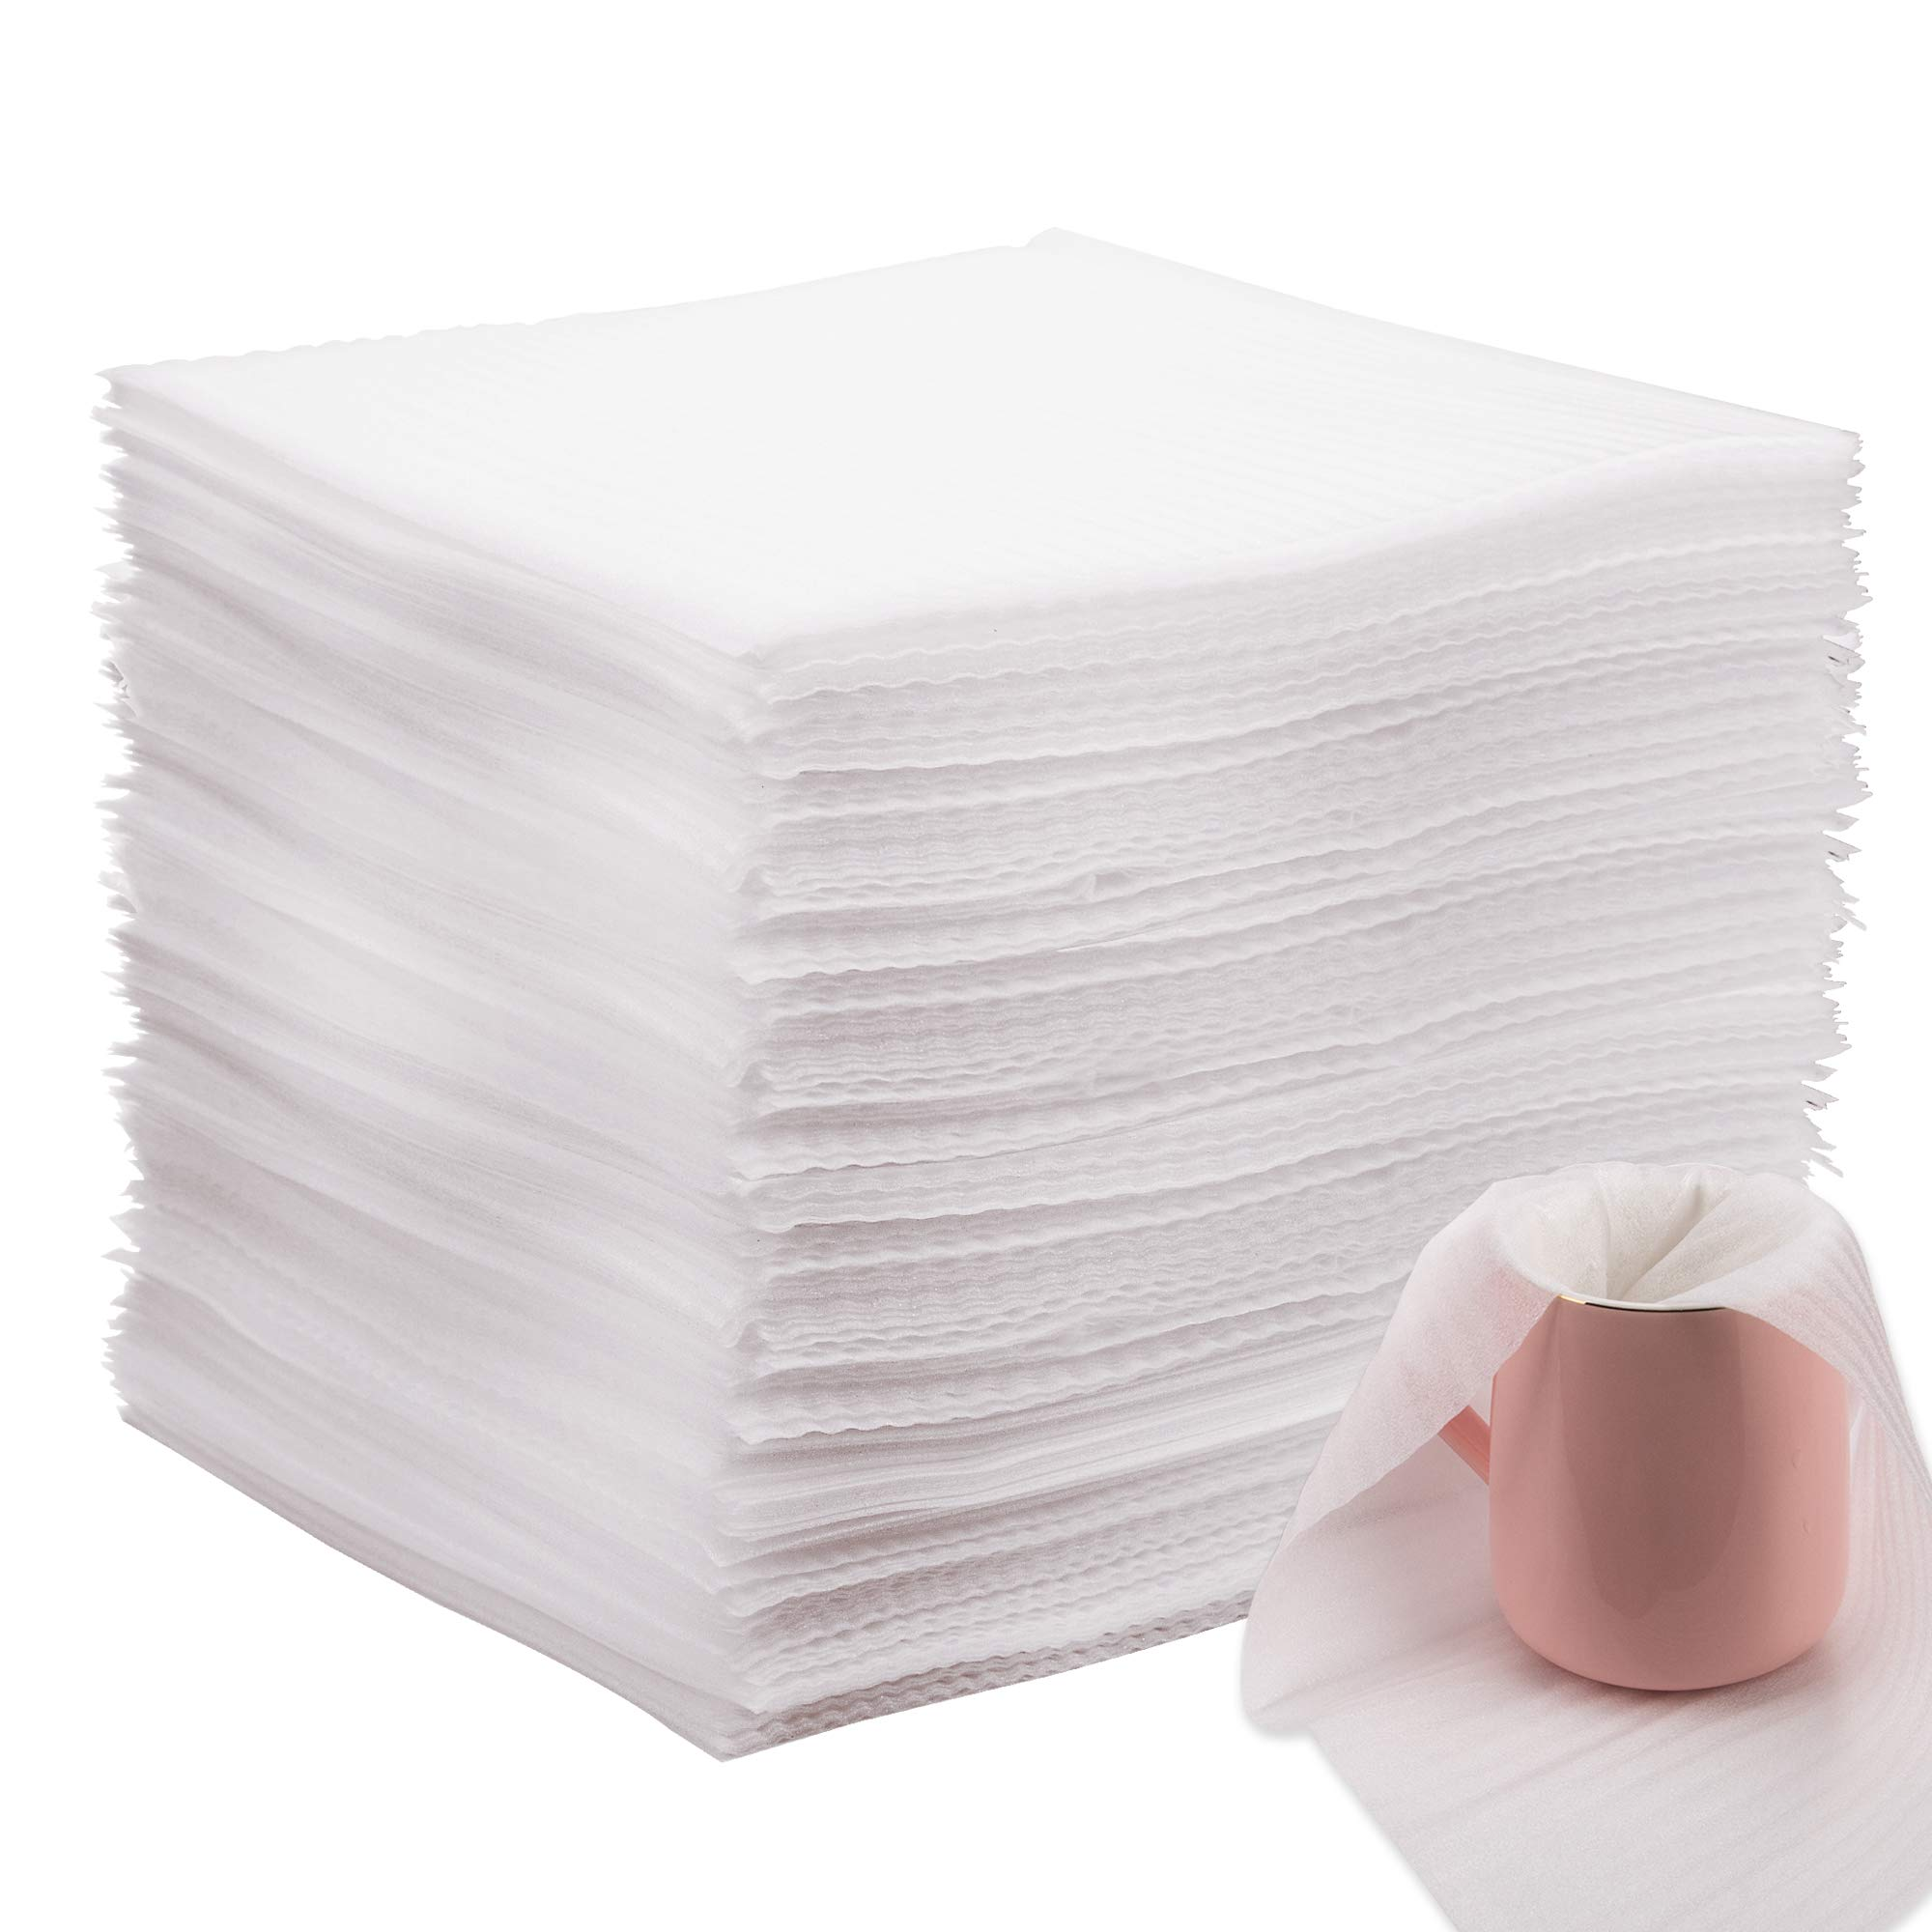 AIEX Cushion Foam Wrap Sheets Moving Supplies Packing Foam Packing Material for Dishes, Plates, Glasses, Vases, Cups, All Purpose Protection, Storage(100 Count,12 x 12 inches)